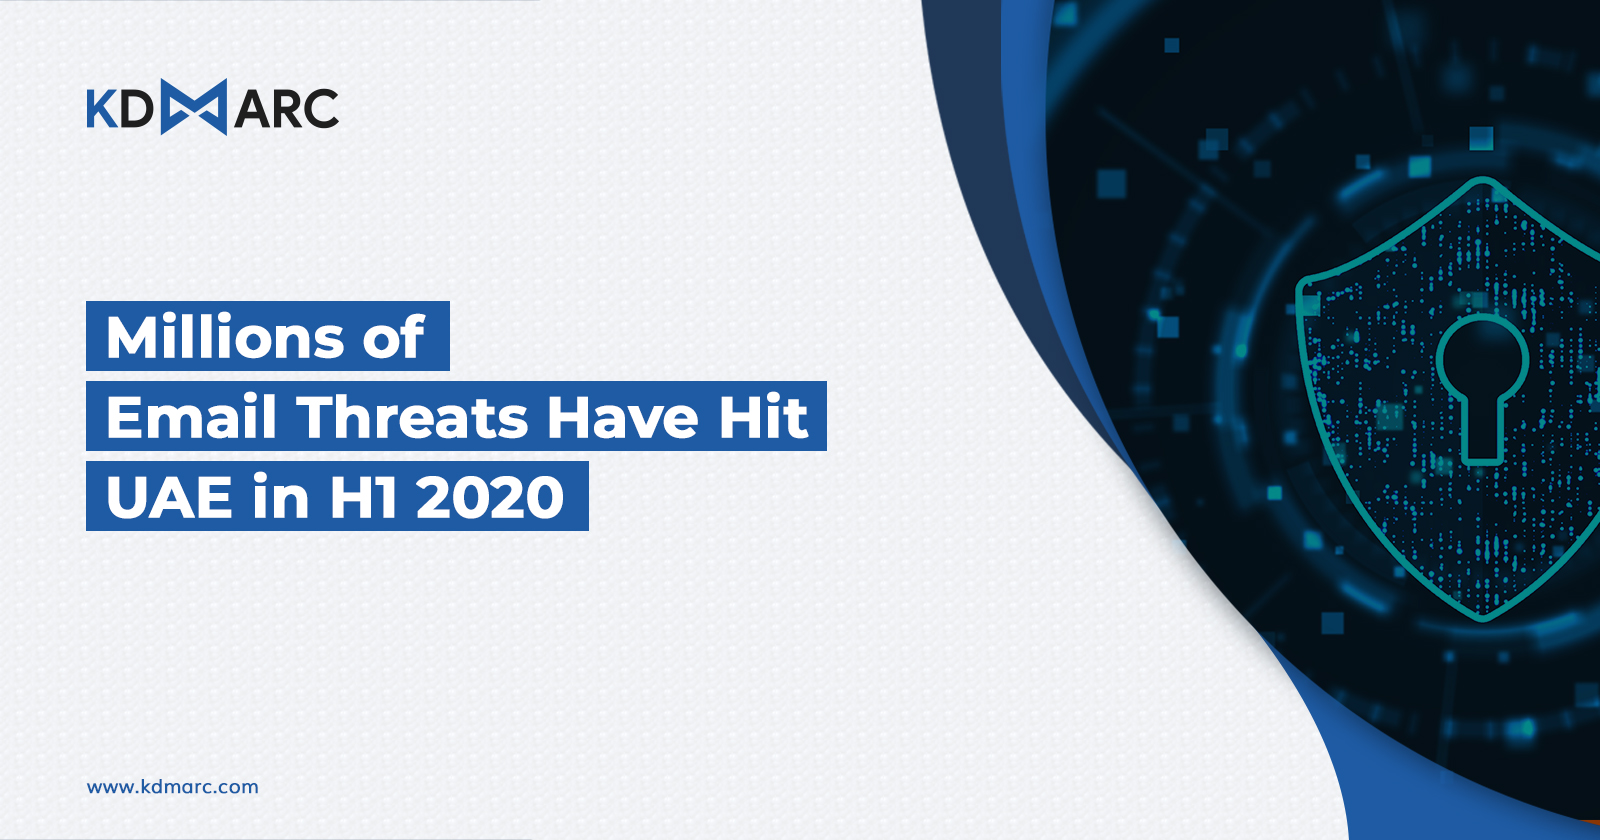 Millions of Email Threats Have Hit UAE in H1 2020